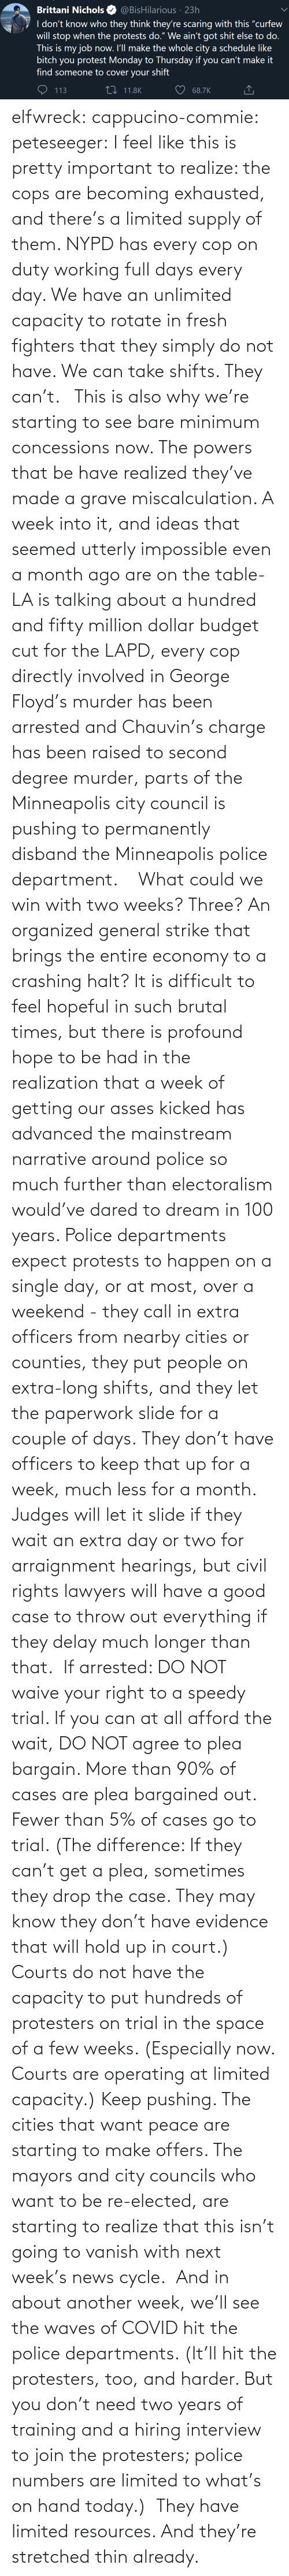 hold: elfwreck:  cappucino-commie:  peteseeger: I feel like this is pretty important to realize: the cops are becoming exhausted, and there's a limited supply of them. NYPD has every cop on duty working full days every day. We have an unlimited capacity to rotate in fresh fighters that they simply do not have. We can take shifts. They can't.   This is also why we're starting to see bare minimum concessions now. The powers that be have realized they've made a grave miscalculation. A week into it, and ideas that seemed utterly impossible even a month ago are on the table- LA is talking about a hundred and fifty million dollar budget cut for the LAPD, every cop directly involved in George Floyd's murder has been arrested and Chauvin's charge has been raised to second degree murder, parts of the Minneapolis city council is pushing to permanently disband the Minneapolis police department.  What could we win with two weeks? Three? An organized general strike that brings the entire economy to a crashing halt? It is difficult to feel hopeful in such brutal times, but there is profound hope to be had in the realization that a week of getting our asses kicked has advanced the mainstream narrative around police so much further than electoralism would've dared to dream in 100 years.   Police departments expect protests to happen on a single day, or at most, over a weekend - they call in extra officers from nearby cities or counties, they put people on extra-long shifts, and they let the paperwork slide for a couple of days. They don't have officers to keep that up for a week, much less for a month. Judges will let it slide if they wait an extra day or two for arraignment hearings, but civil rights lawyers will have a good case to throw out everything if they delay much longer than that. If arrested: DO NOT waive your right to a speedy trial. If you can at all afford the wait, DO NOT agree to plea bargain. More than 90% of cases are plea bargained out. Fewer than 5% of cases go 